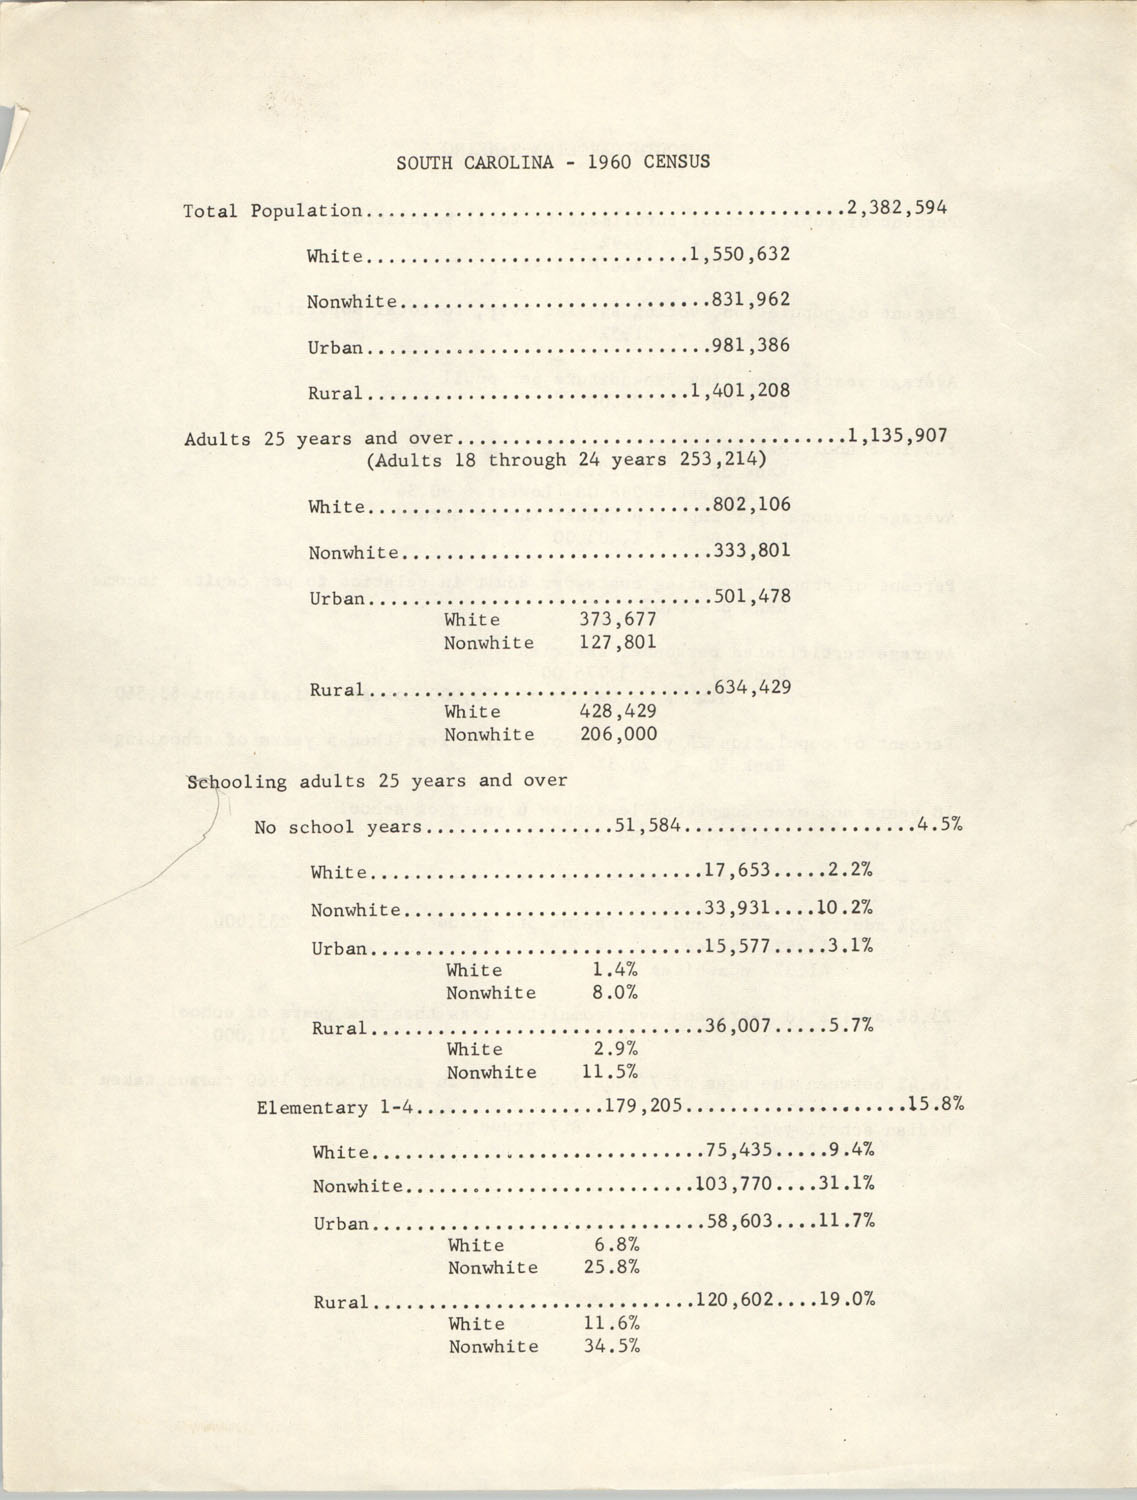 South Carolina 1960 Census